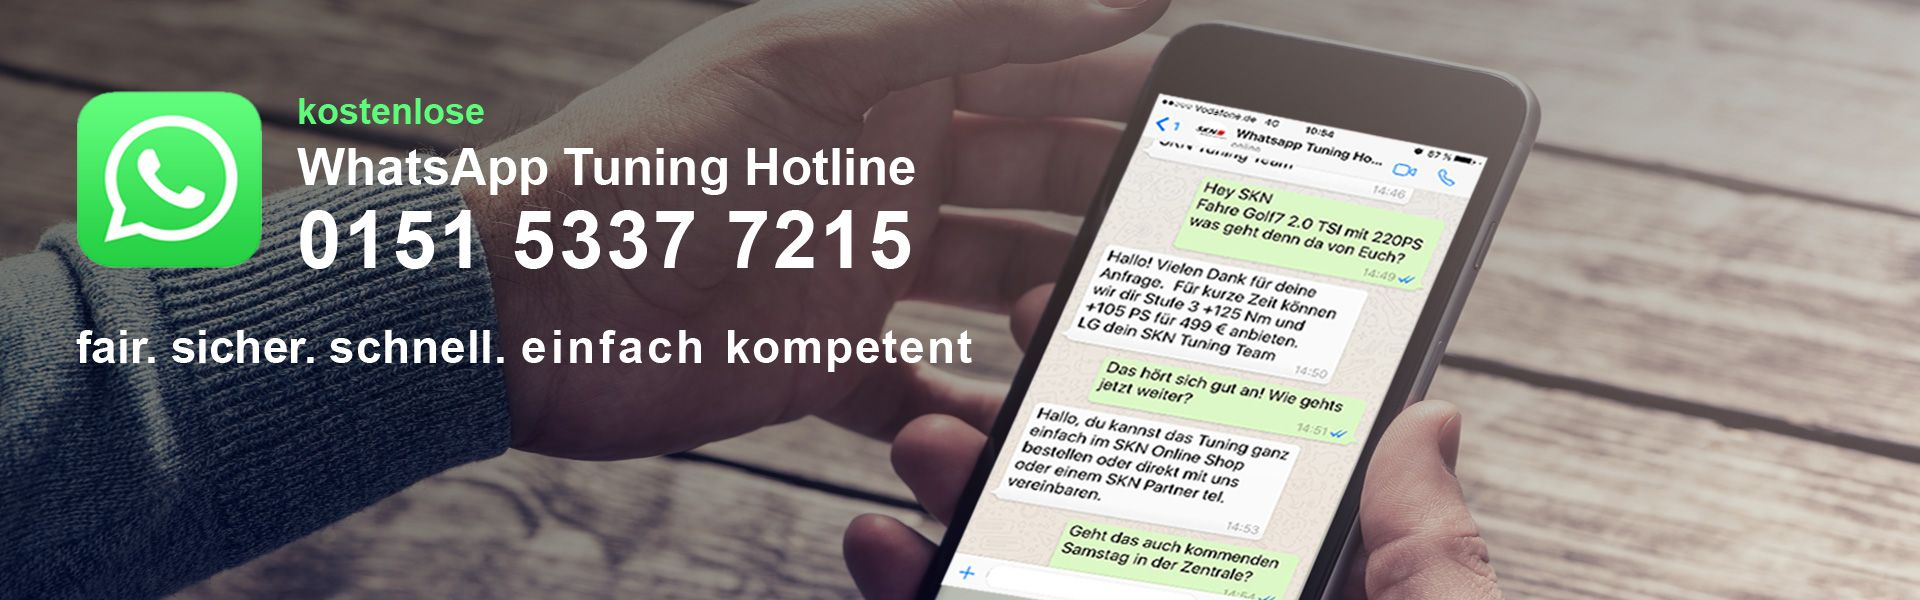 WhatsApp Tuning Hotline